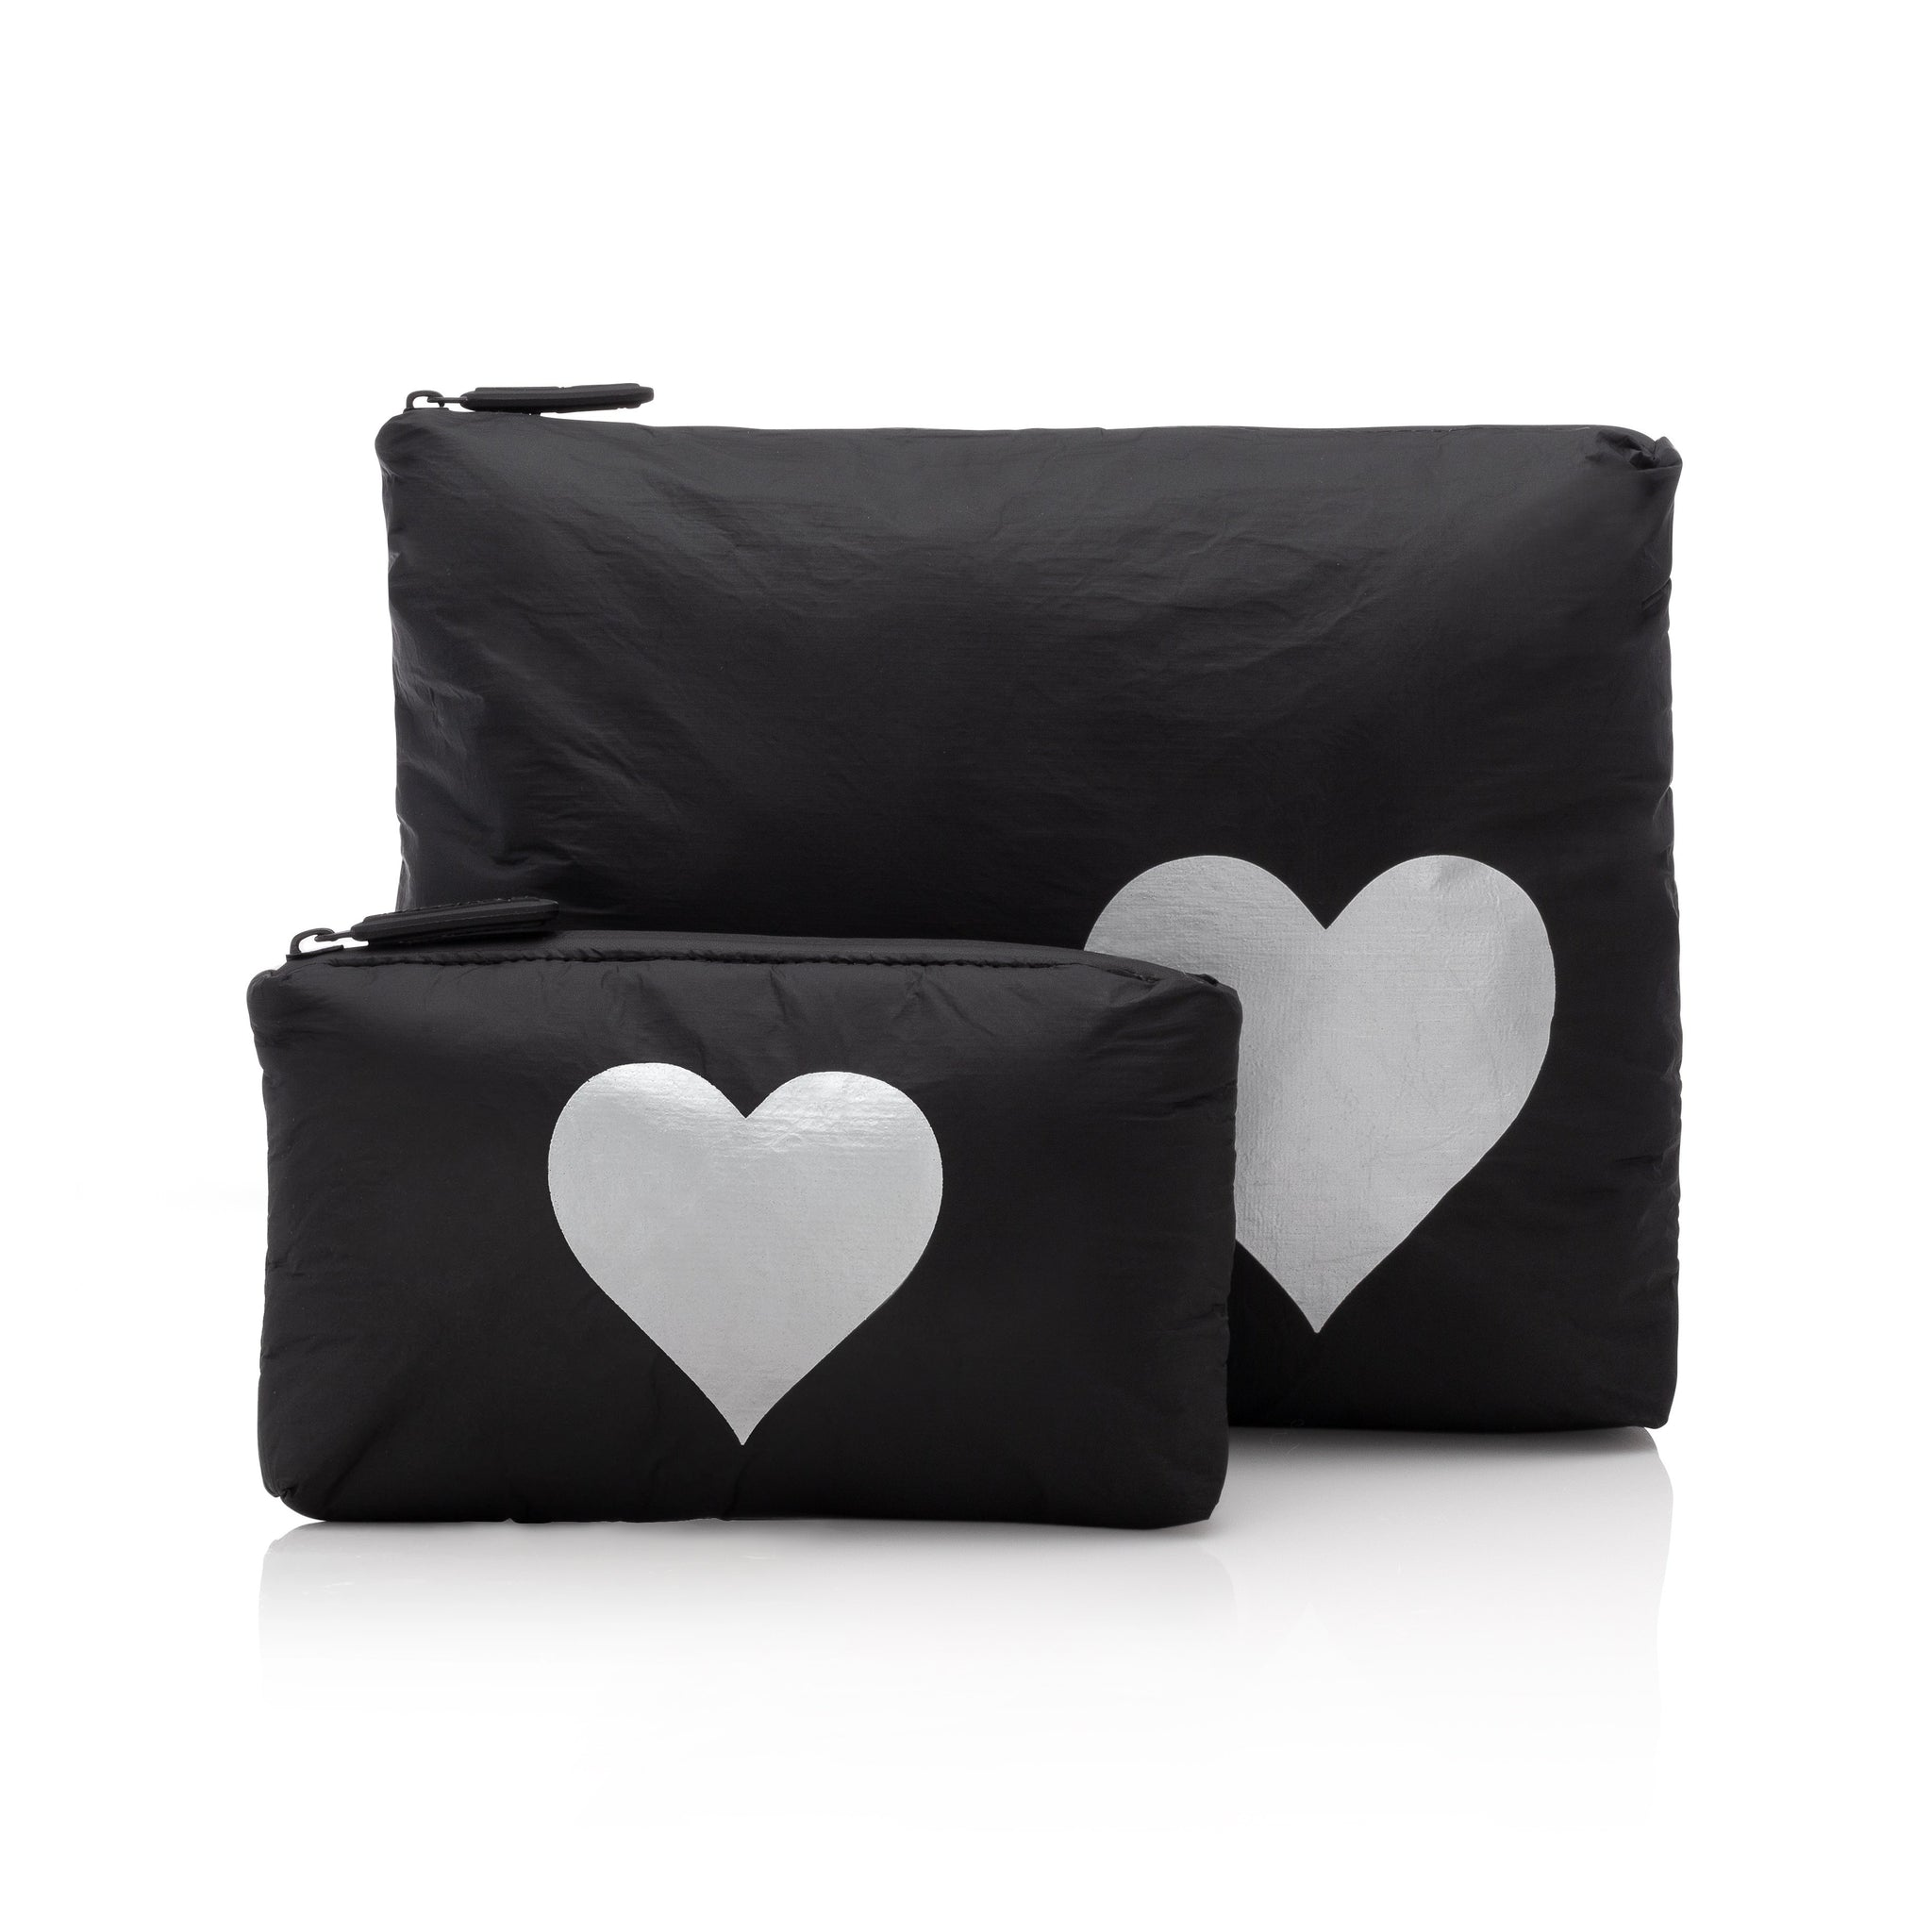 Set of Two Packs - Black with a Metallic Silver Heart